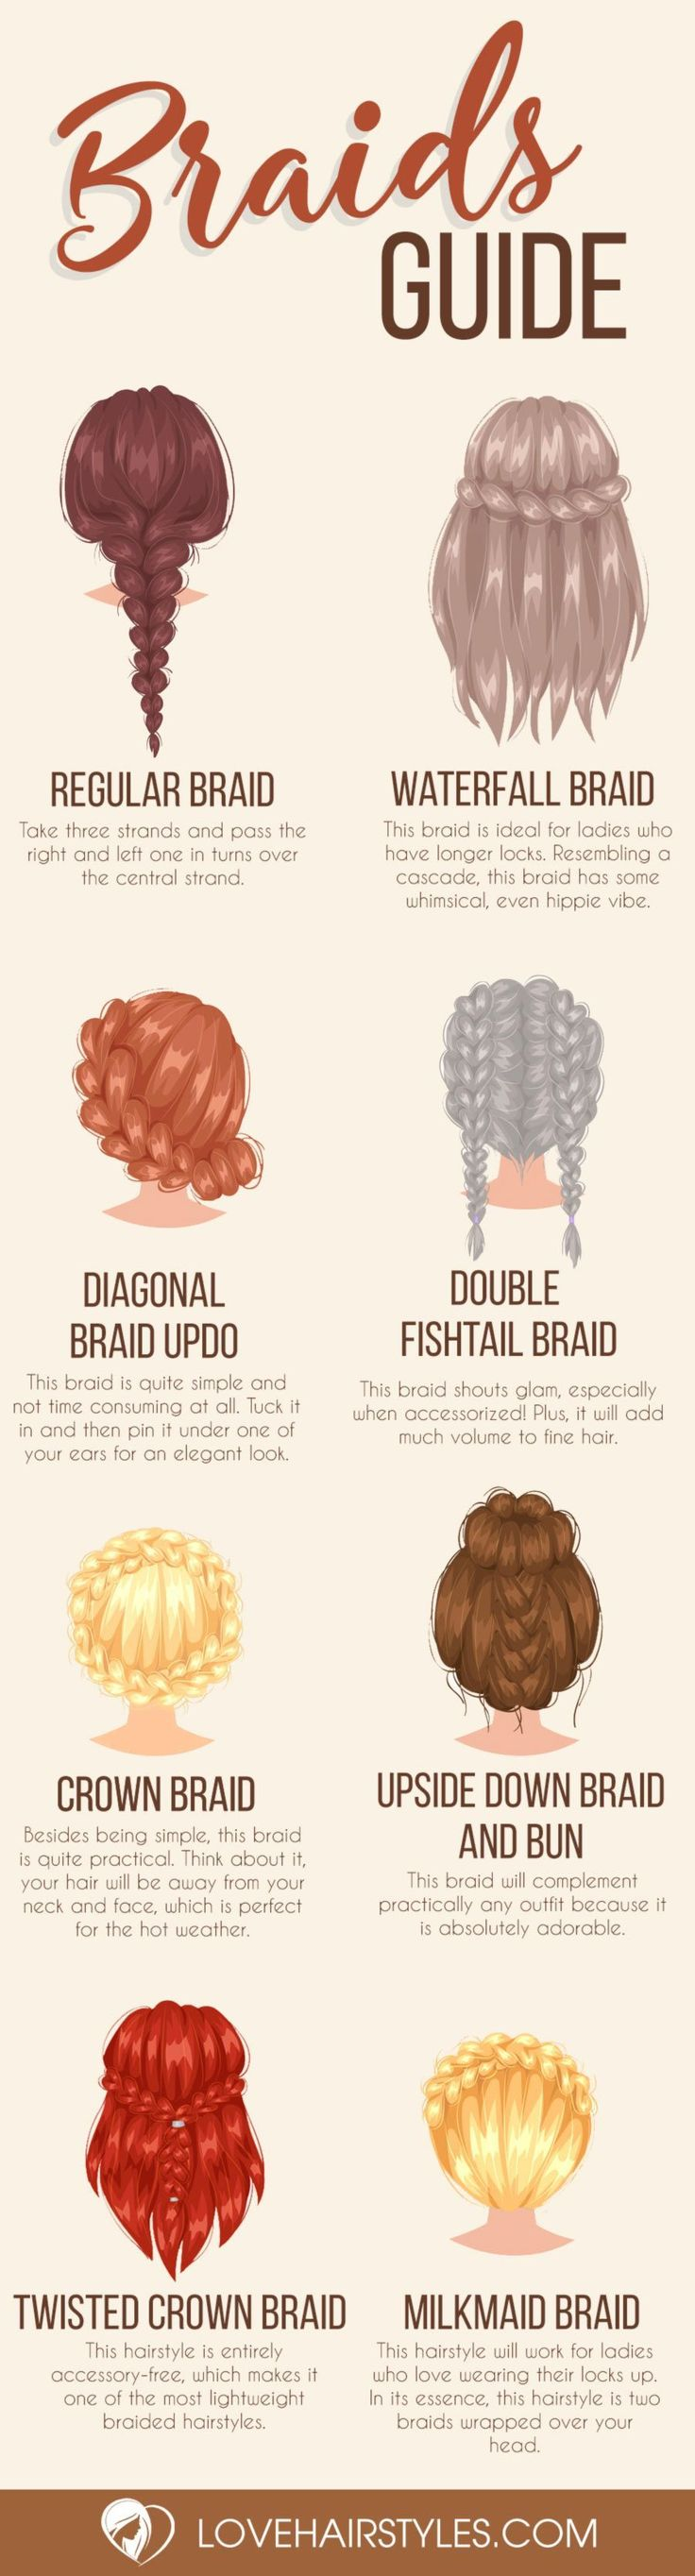 Braided Hairstyles for Spring 2017: Easy, Messy and Sleek Braids ★ See more: http://lovehairstyles.com/braided-hairstyles-for-spring/ #haircareaccessories